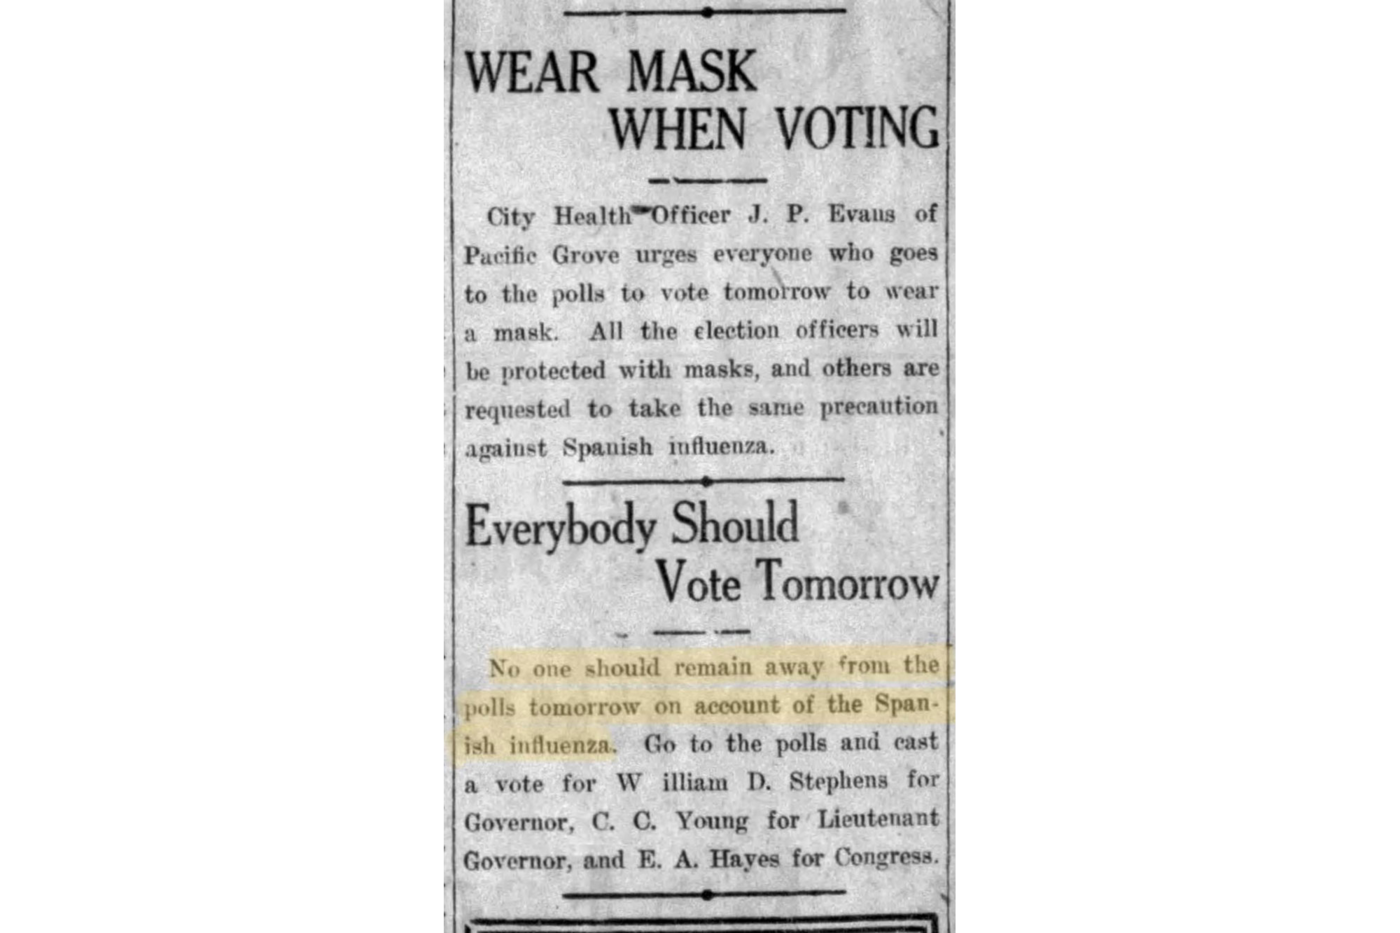 """A newspaper clipping that includes the headlines """"Wear Mask When Voting"""" and """"Everybody Should Vote Tomorrow."""""""